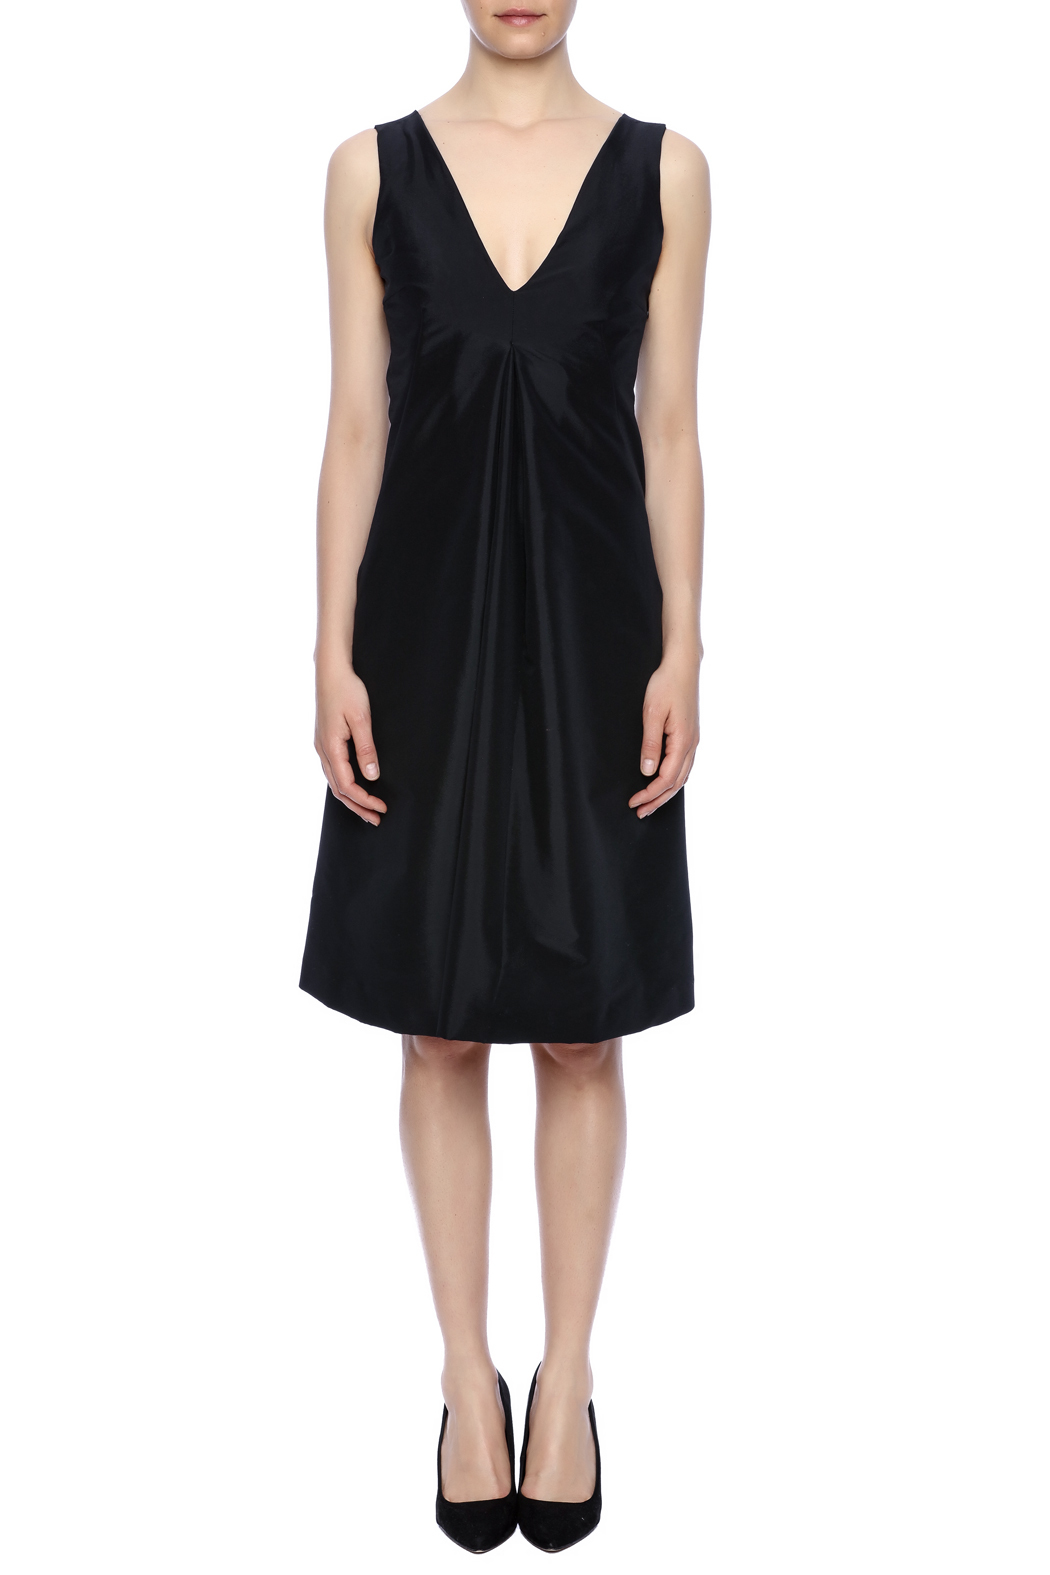 Robert Greco Couture Black Empire Dress - Front Cropped Image